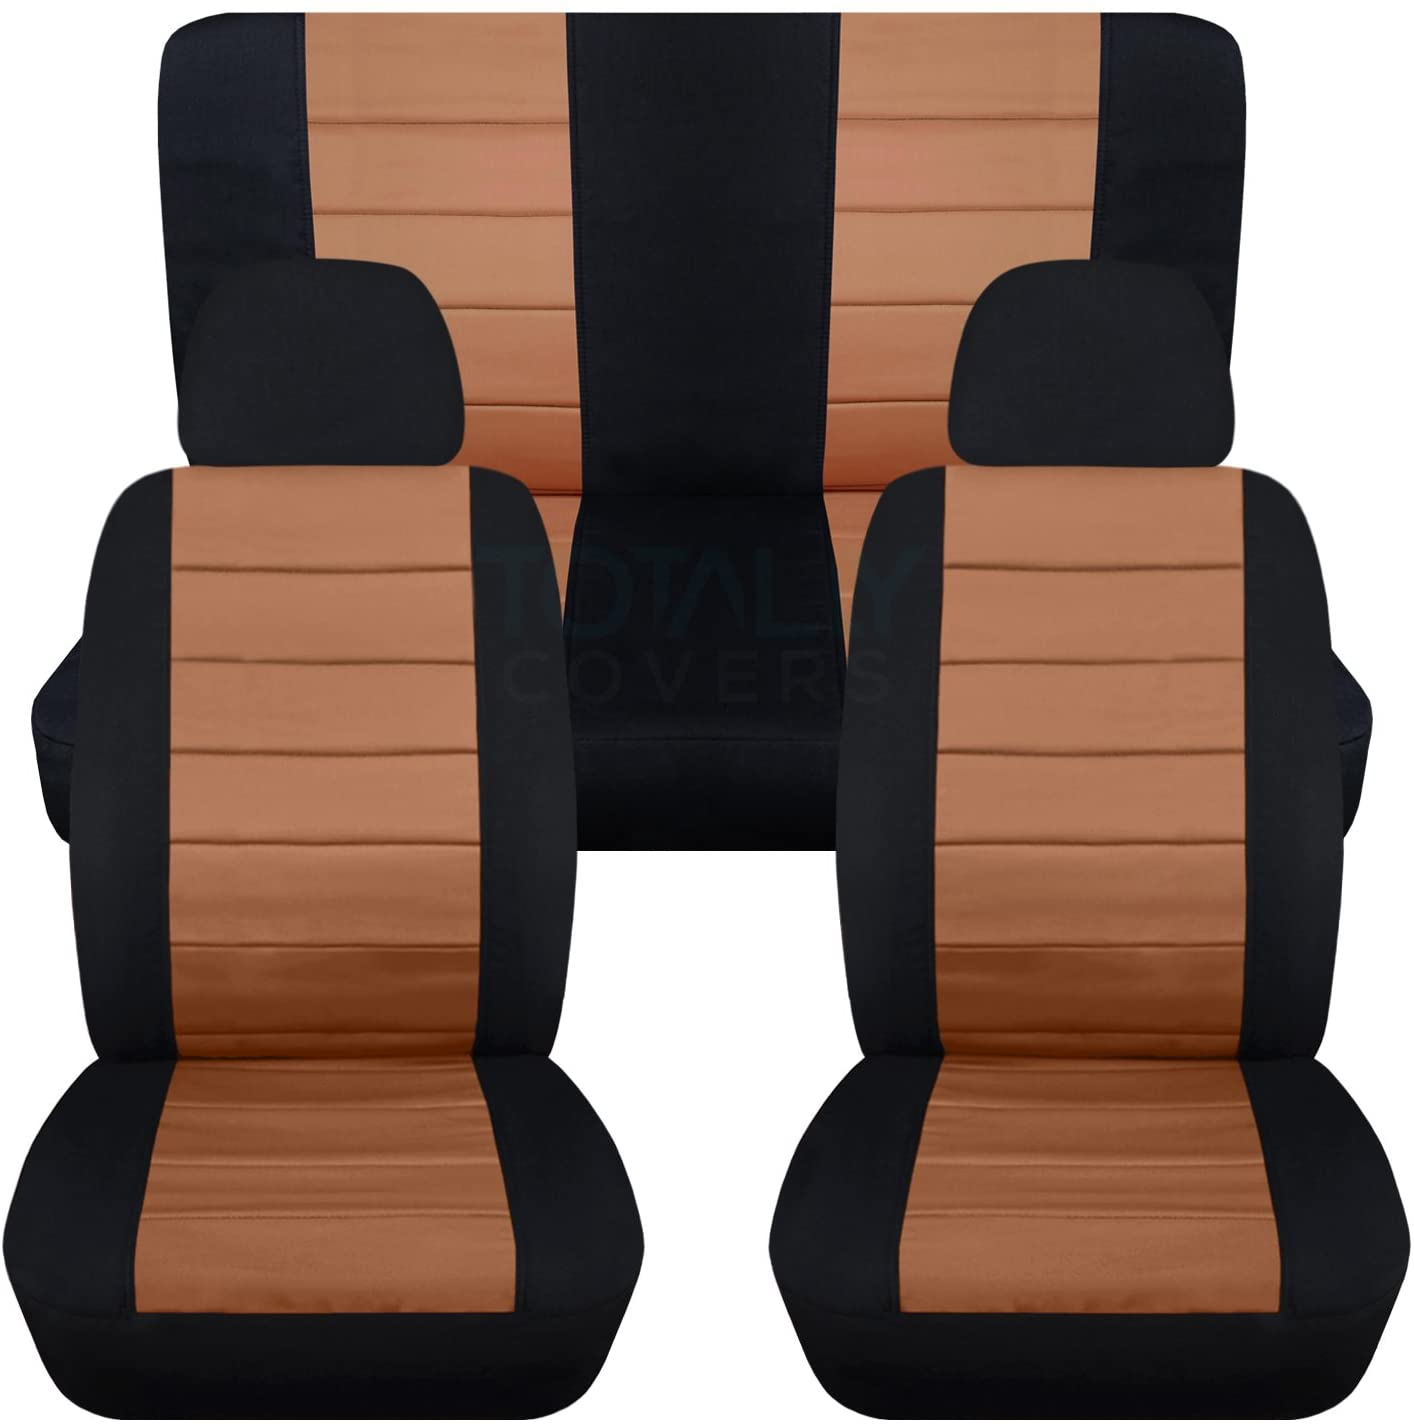 Totally Covers 2-Tone Car Seat Covers w 2 Front Headrest Covers: Black and Tan - Semi-Custom Fit - Full Set - Will Make Fit Any Car/Truck/Van/RV/SUV (22 Colors)